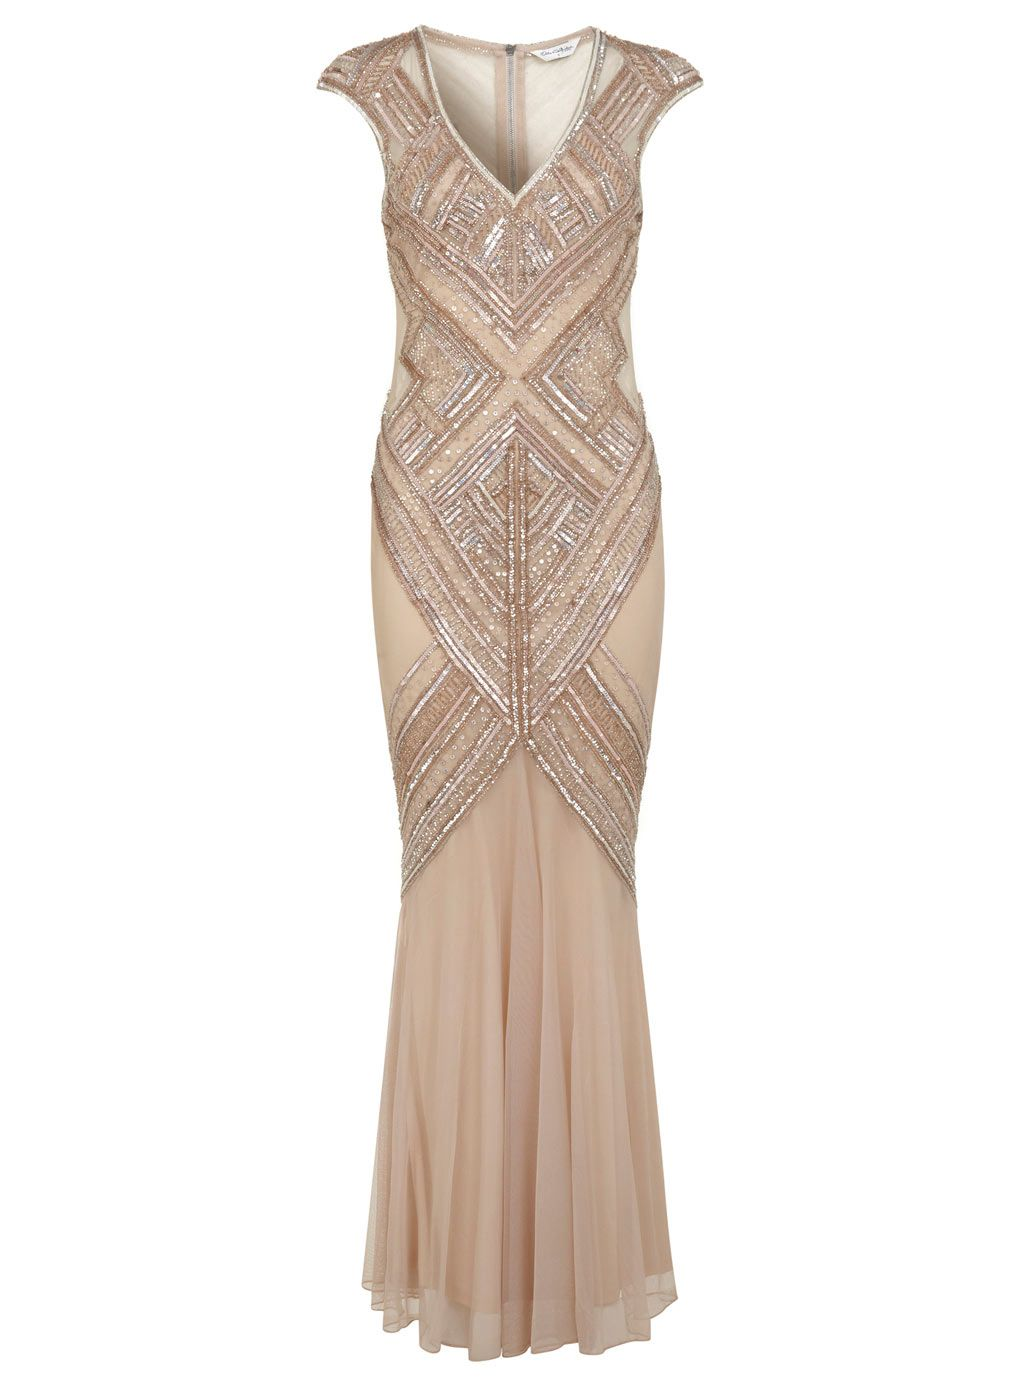 ef03a255f5132 Embellished Maxi Dress - View All - New In - Miss Selfridge ...